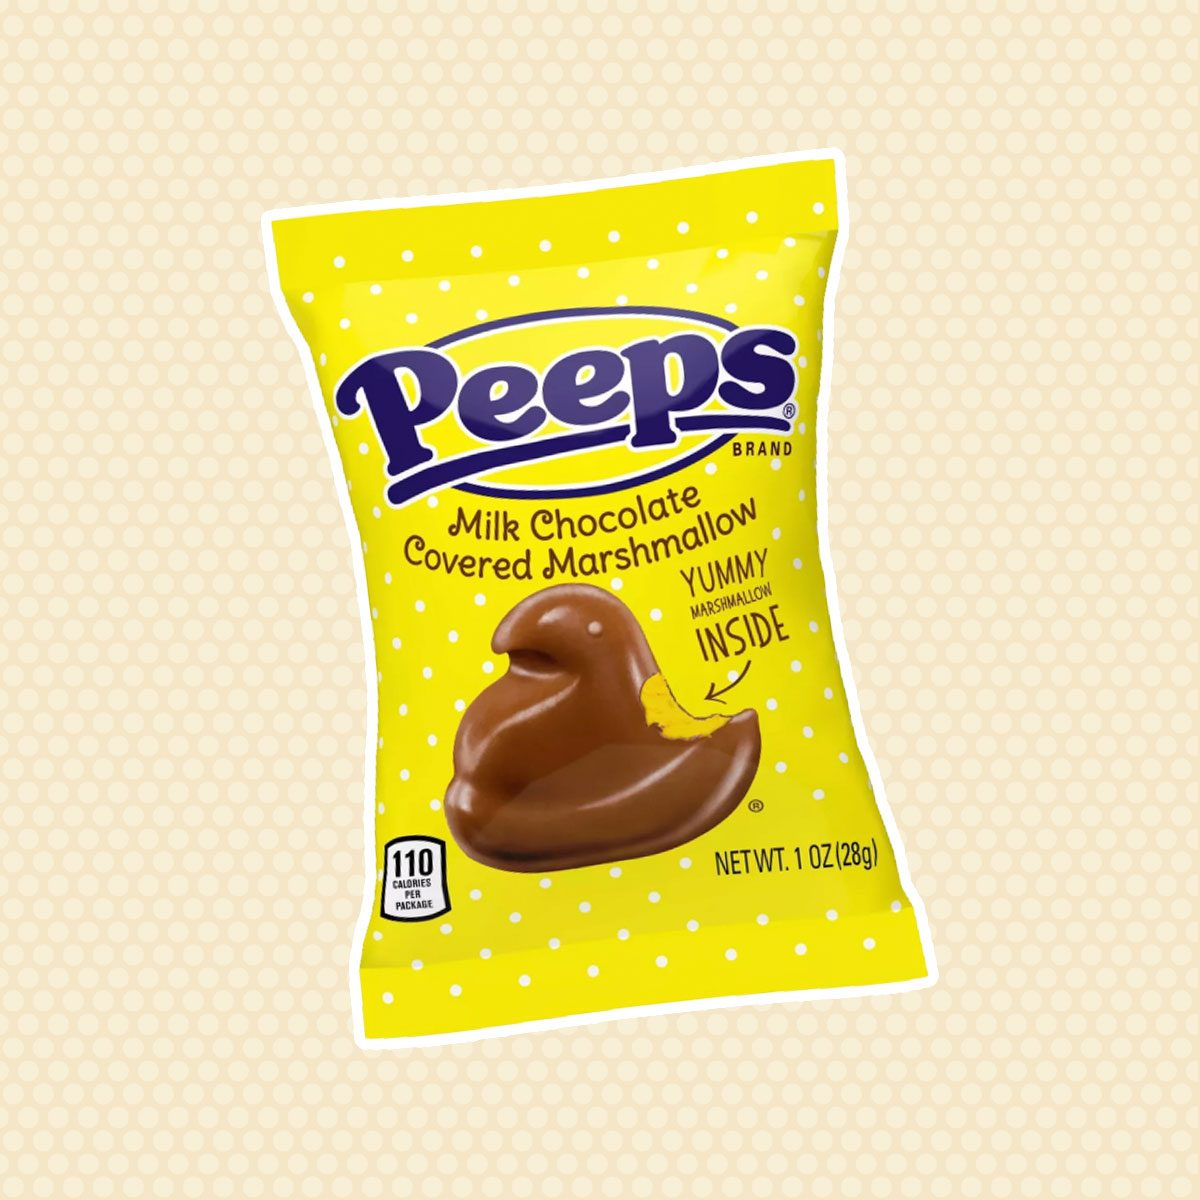 Milk Chocolate-Covered Marshmallow Peeps